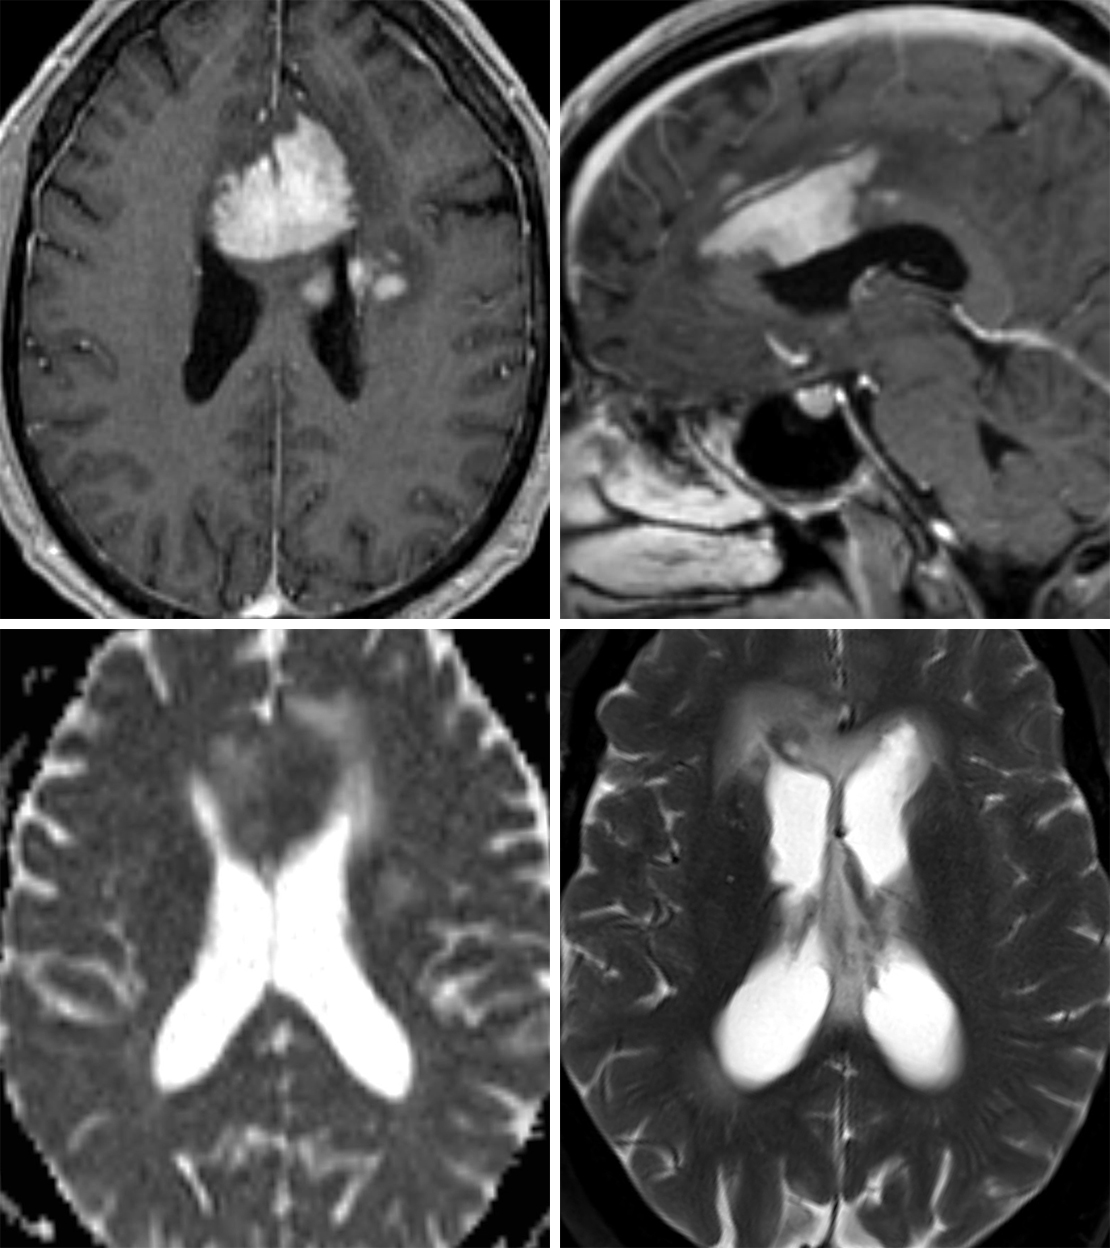 Figure 1: The patchy and solid enhancement of lymphoma on postcontrast T1WI (top row left, top row right) and abutment of an ependymal surface is typical in immunocompetent patients. This lymphoma crosses the midline through the anterior body of the corpus callosum. Low T2 (bottom row left) and ADC (bottom row right) signal indicate hypercellularity. This lymphoma is also inciting a moderate amount of T2-hyperintense surrounding vasogenic edema.